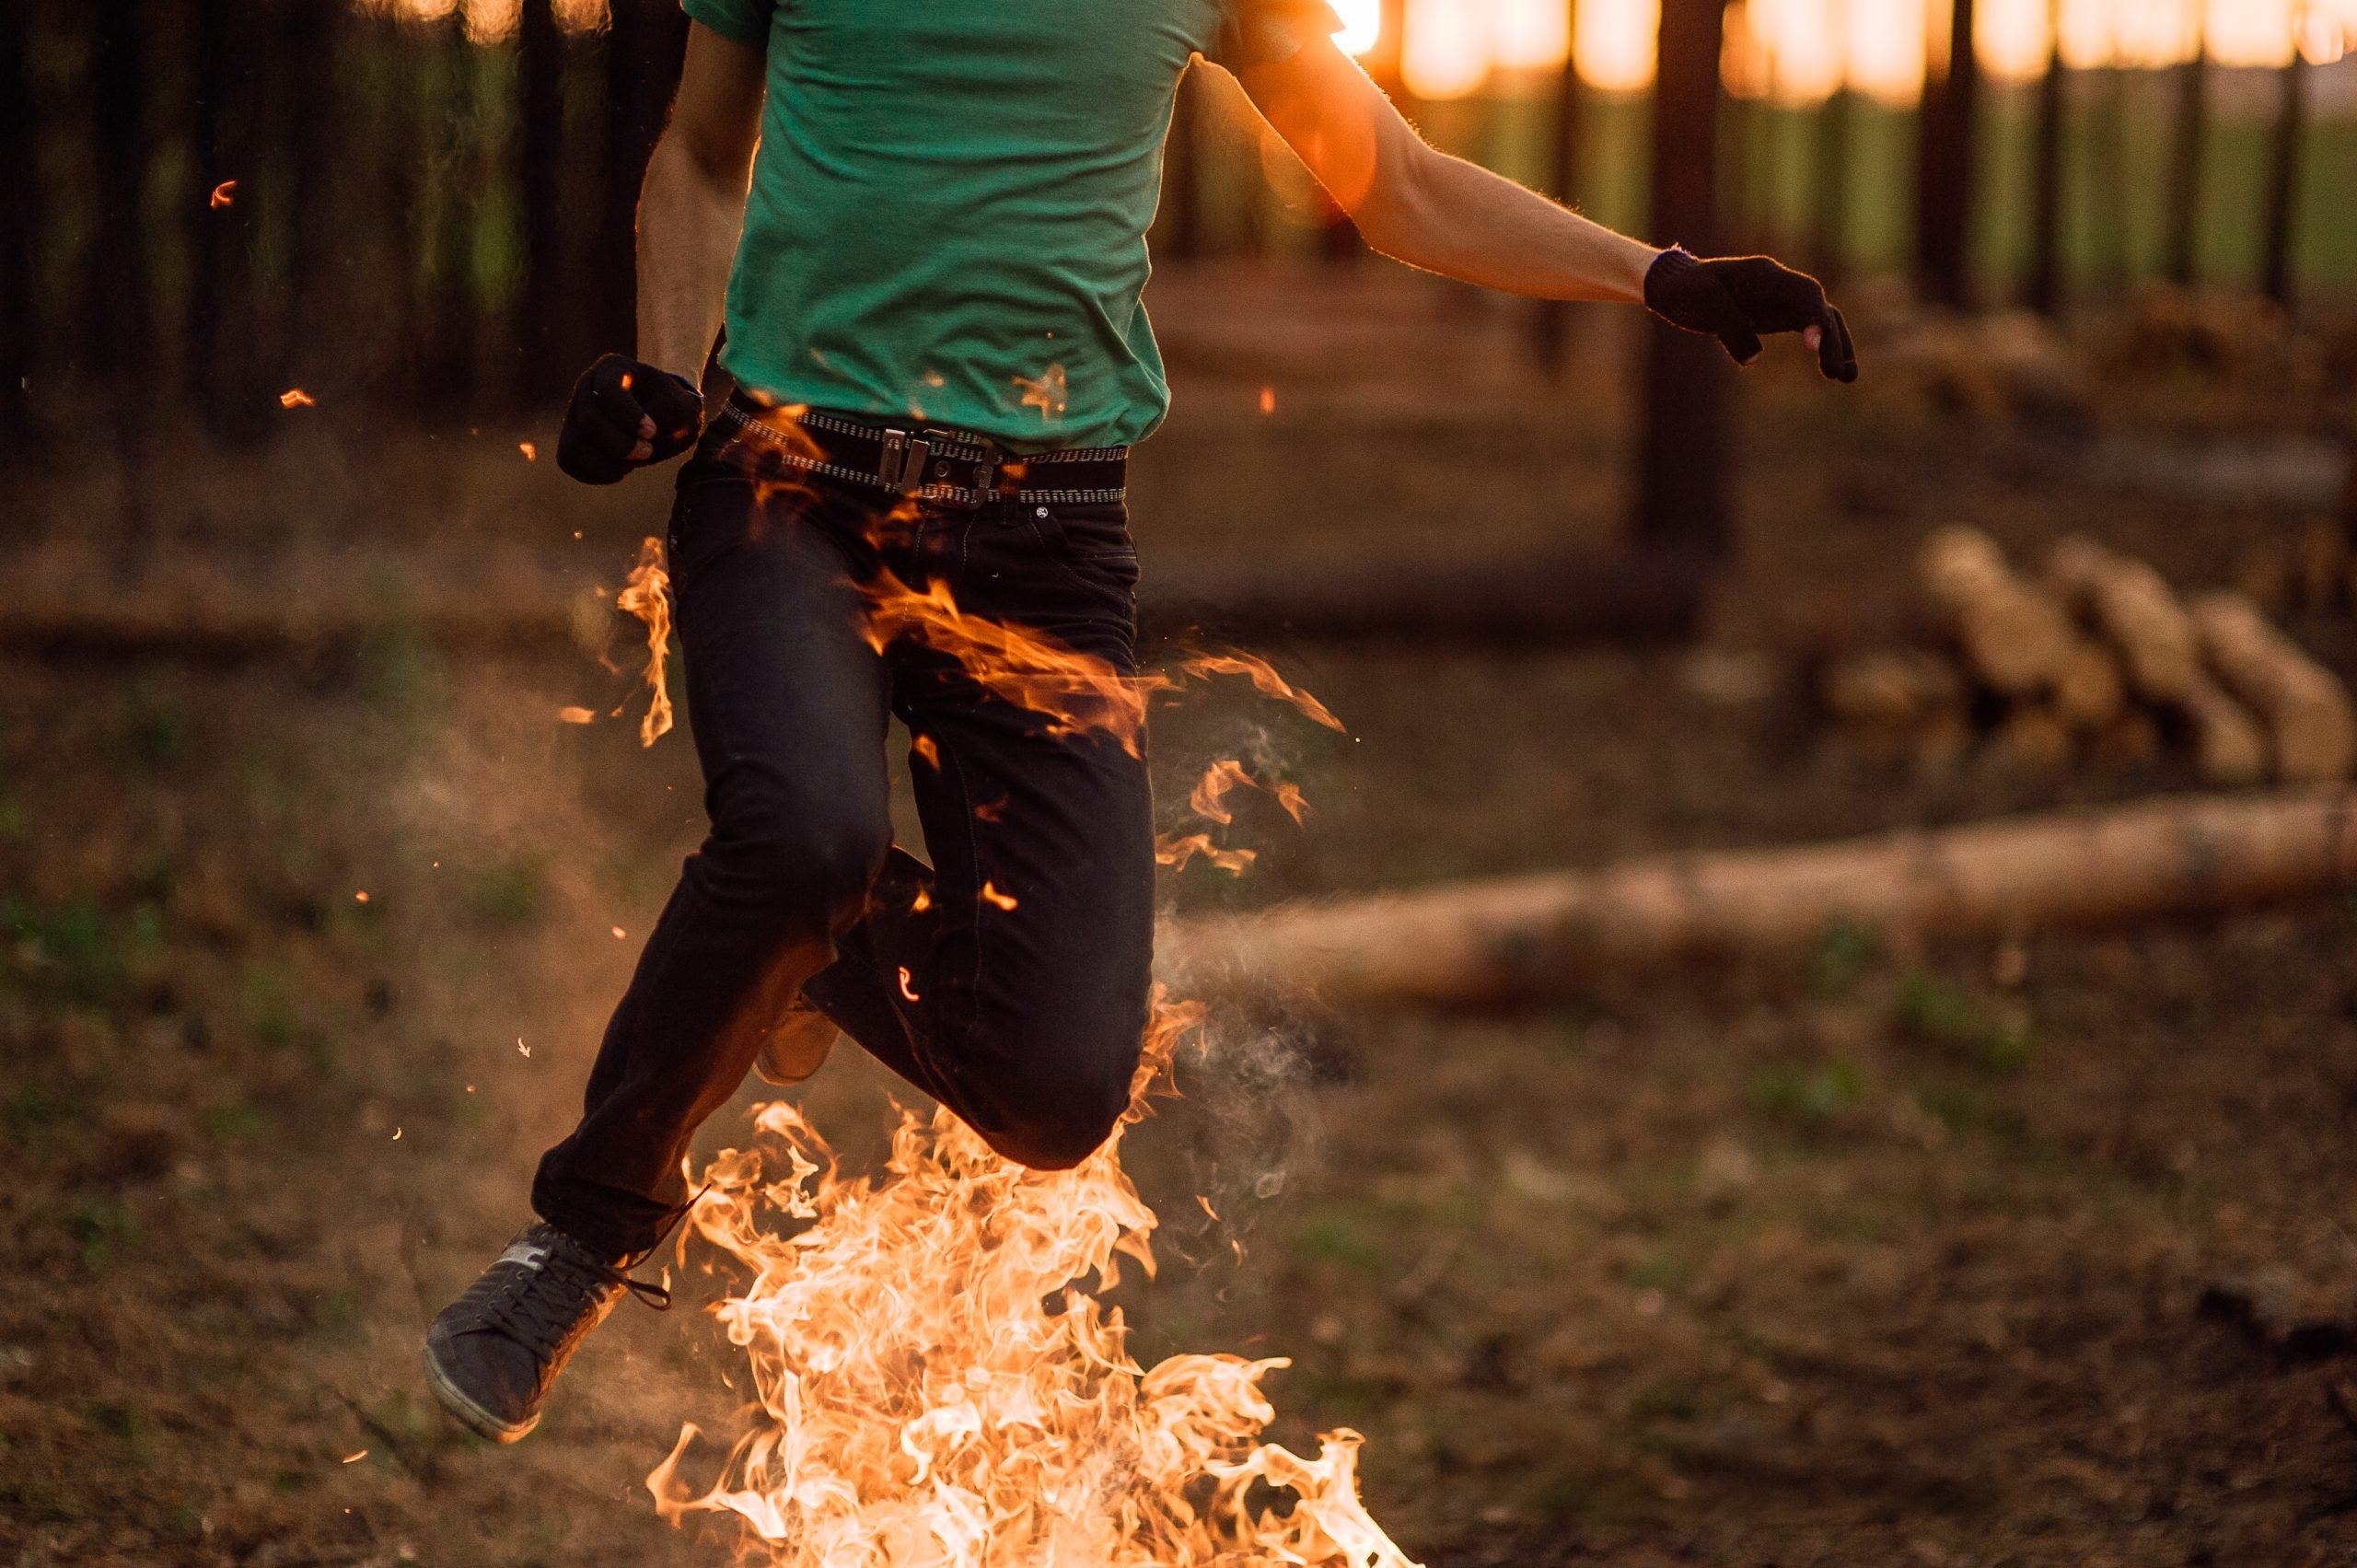 man is jumping over a fire